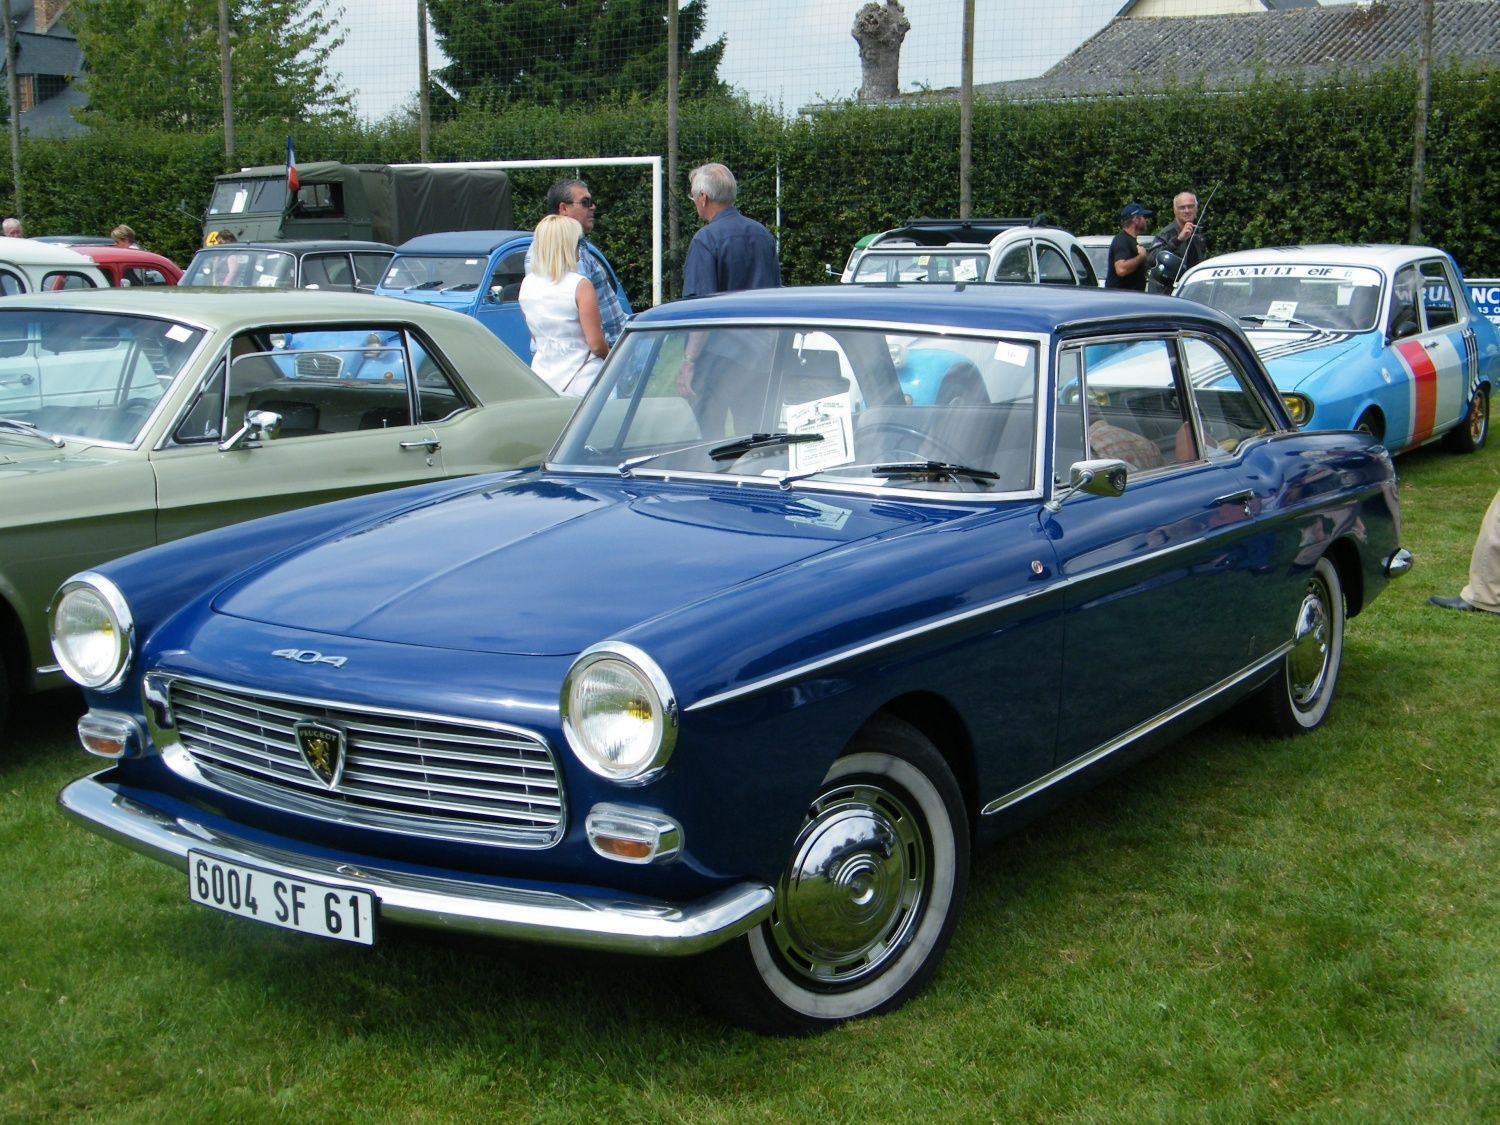 peugeot 404 coup cars and motorcycles pinterest peugeot vintage bikes and cars. Black Bedroom Furniture Sets. Home Design Ideas